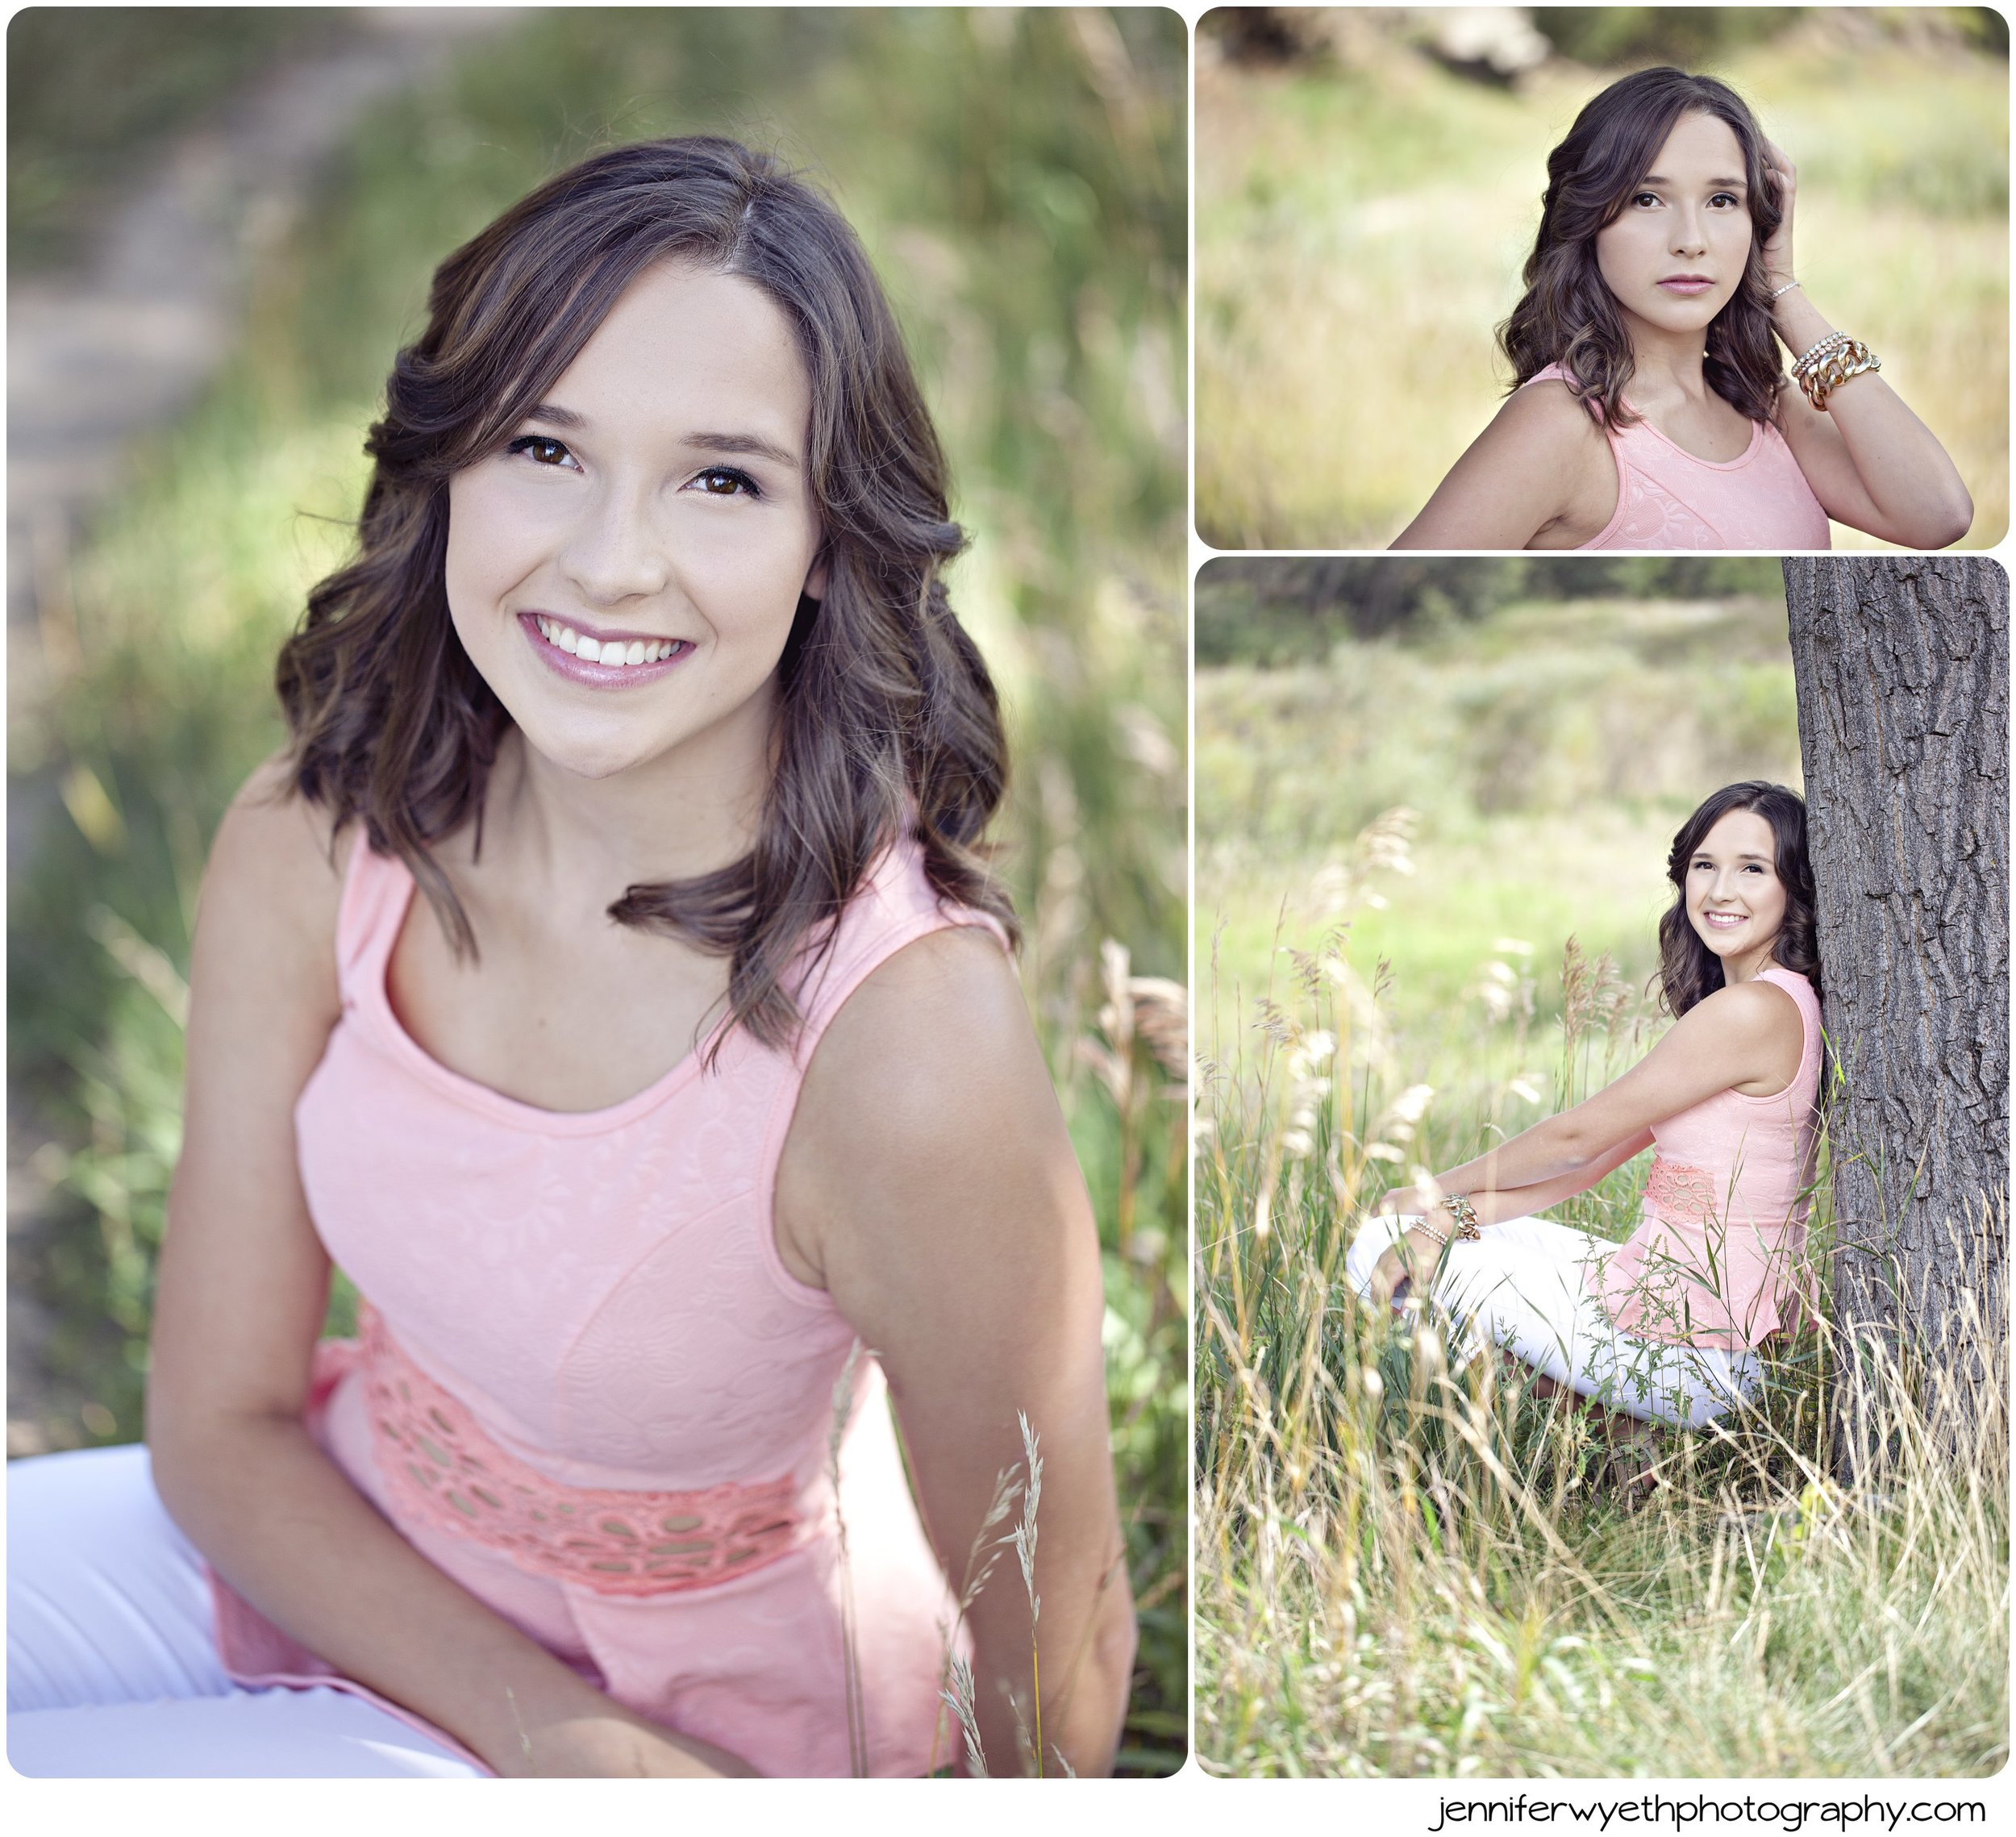 lace coral top worn by brunette for senior pictures in field